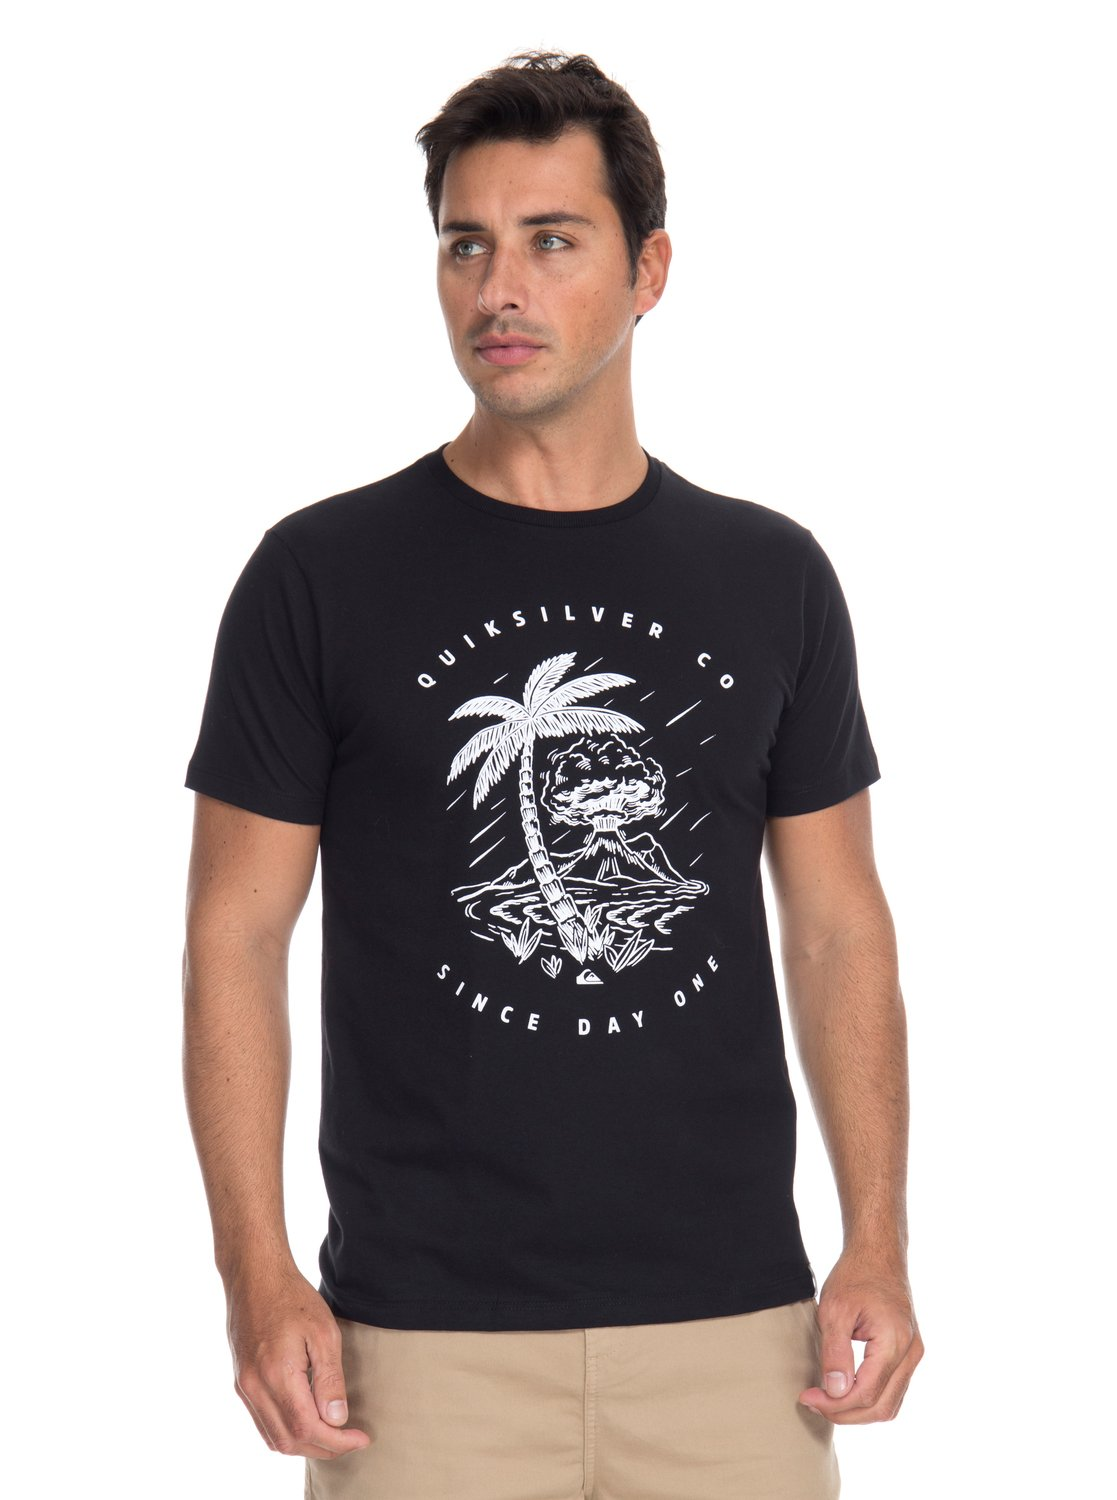 c67a233f83 0 QK CAMISETA SLIM FIT M C SINCE ONE DAY Preto BR61241613 Quiksilver